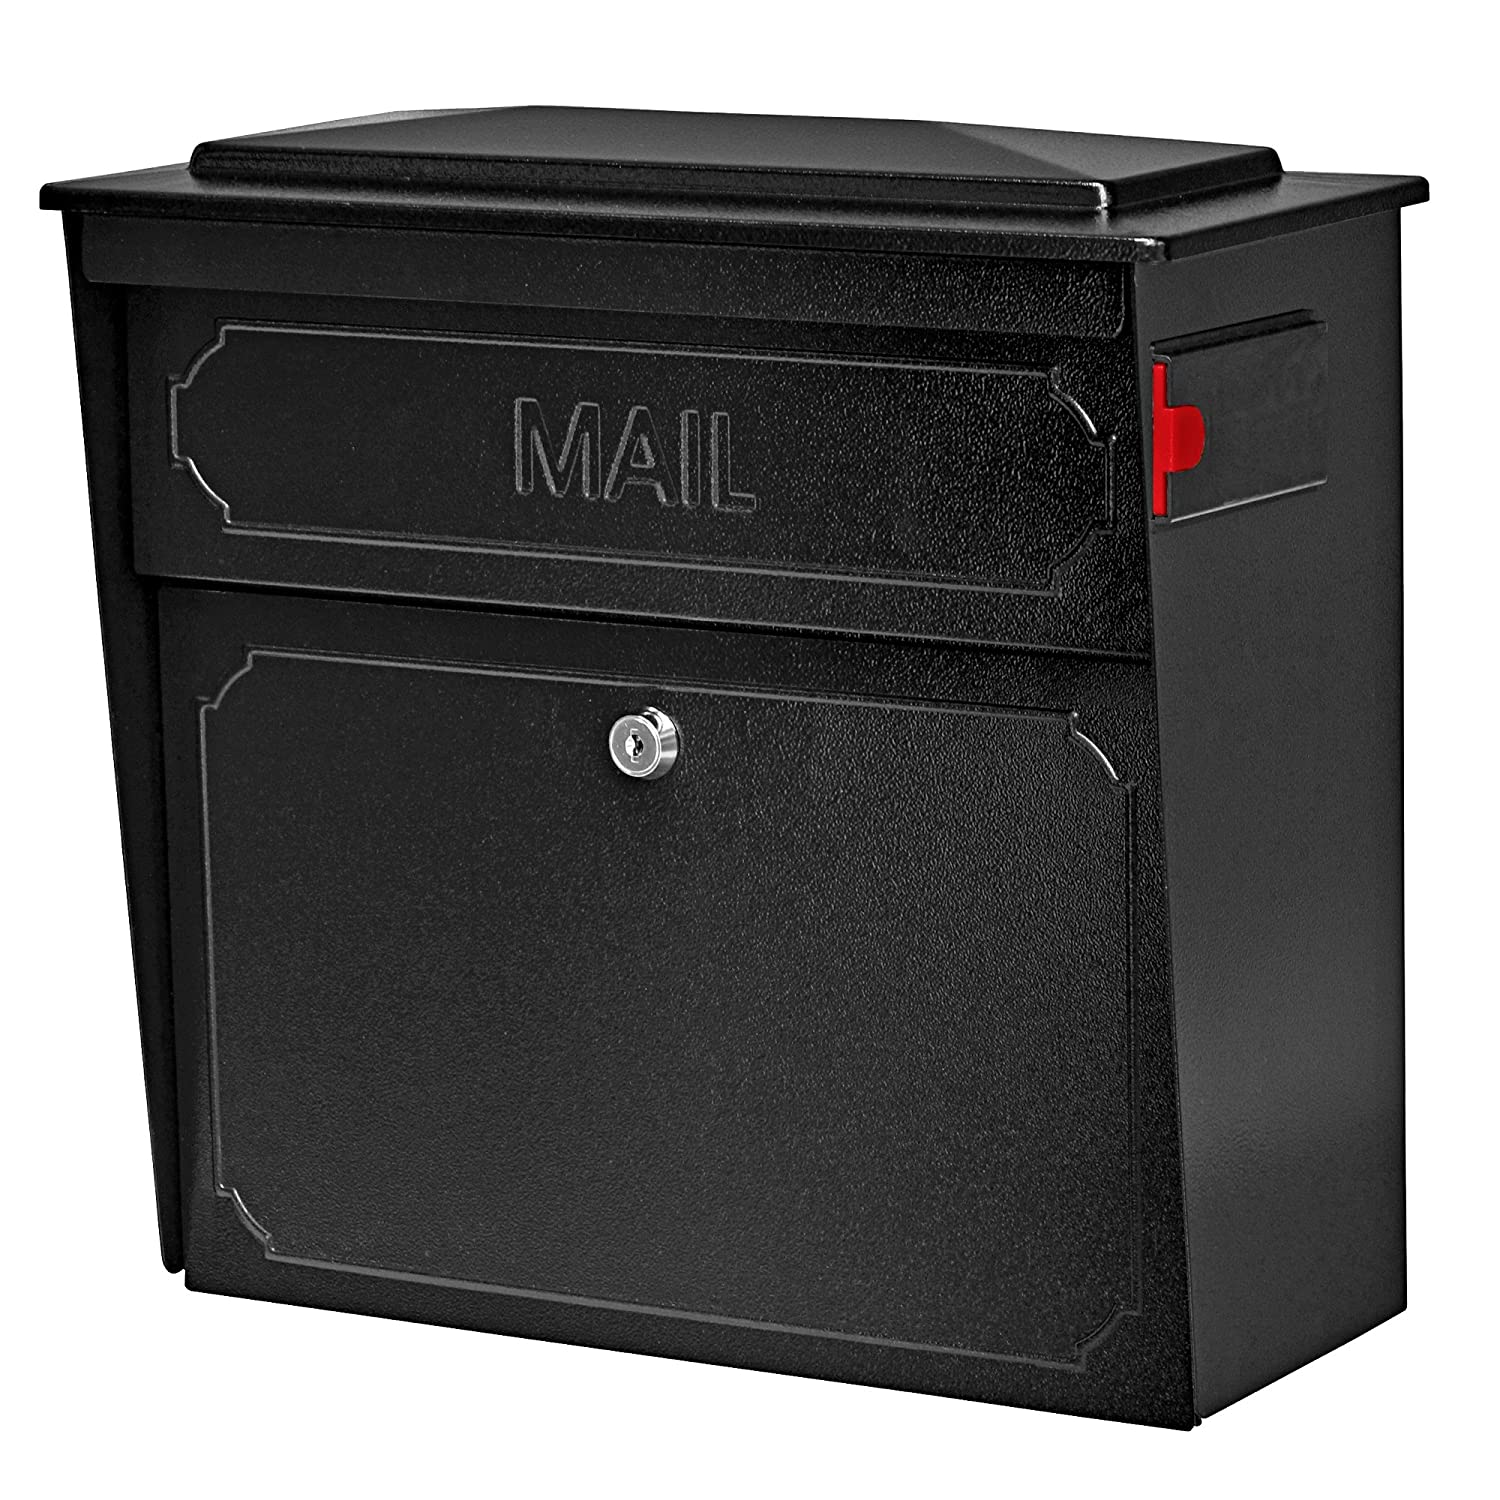 Mail Boss 7172 Security, Black Townhouse Locking Mailbox 15.8 In W X 16.1 In D X 7-1/2 In H, 14/16 Ga Steel